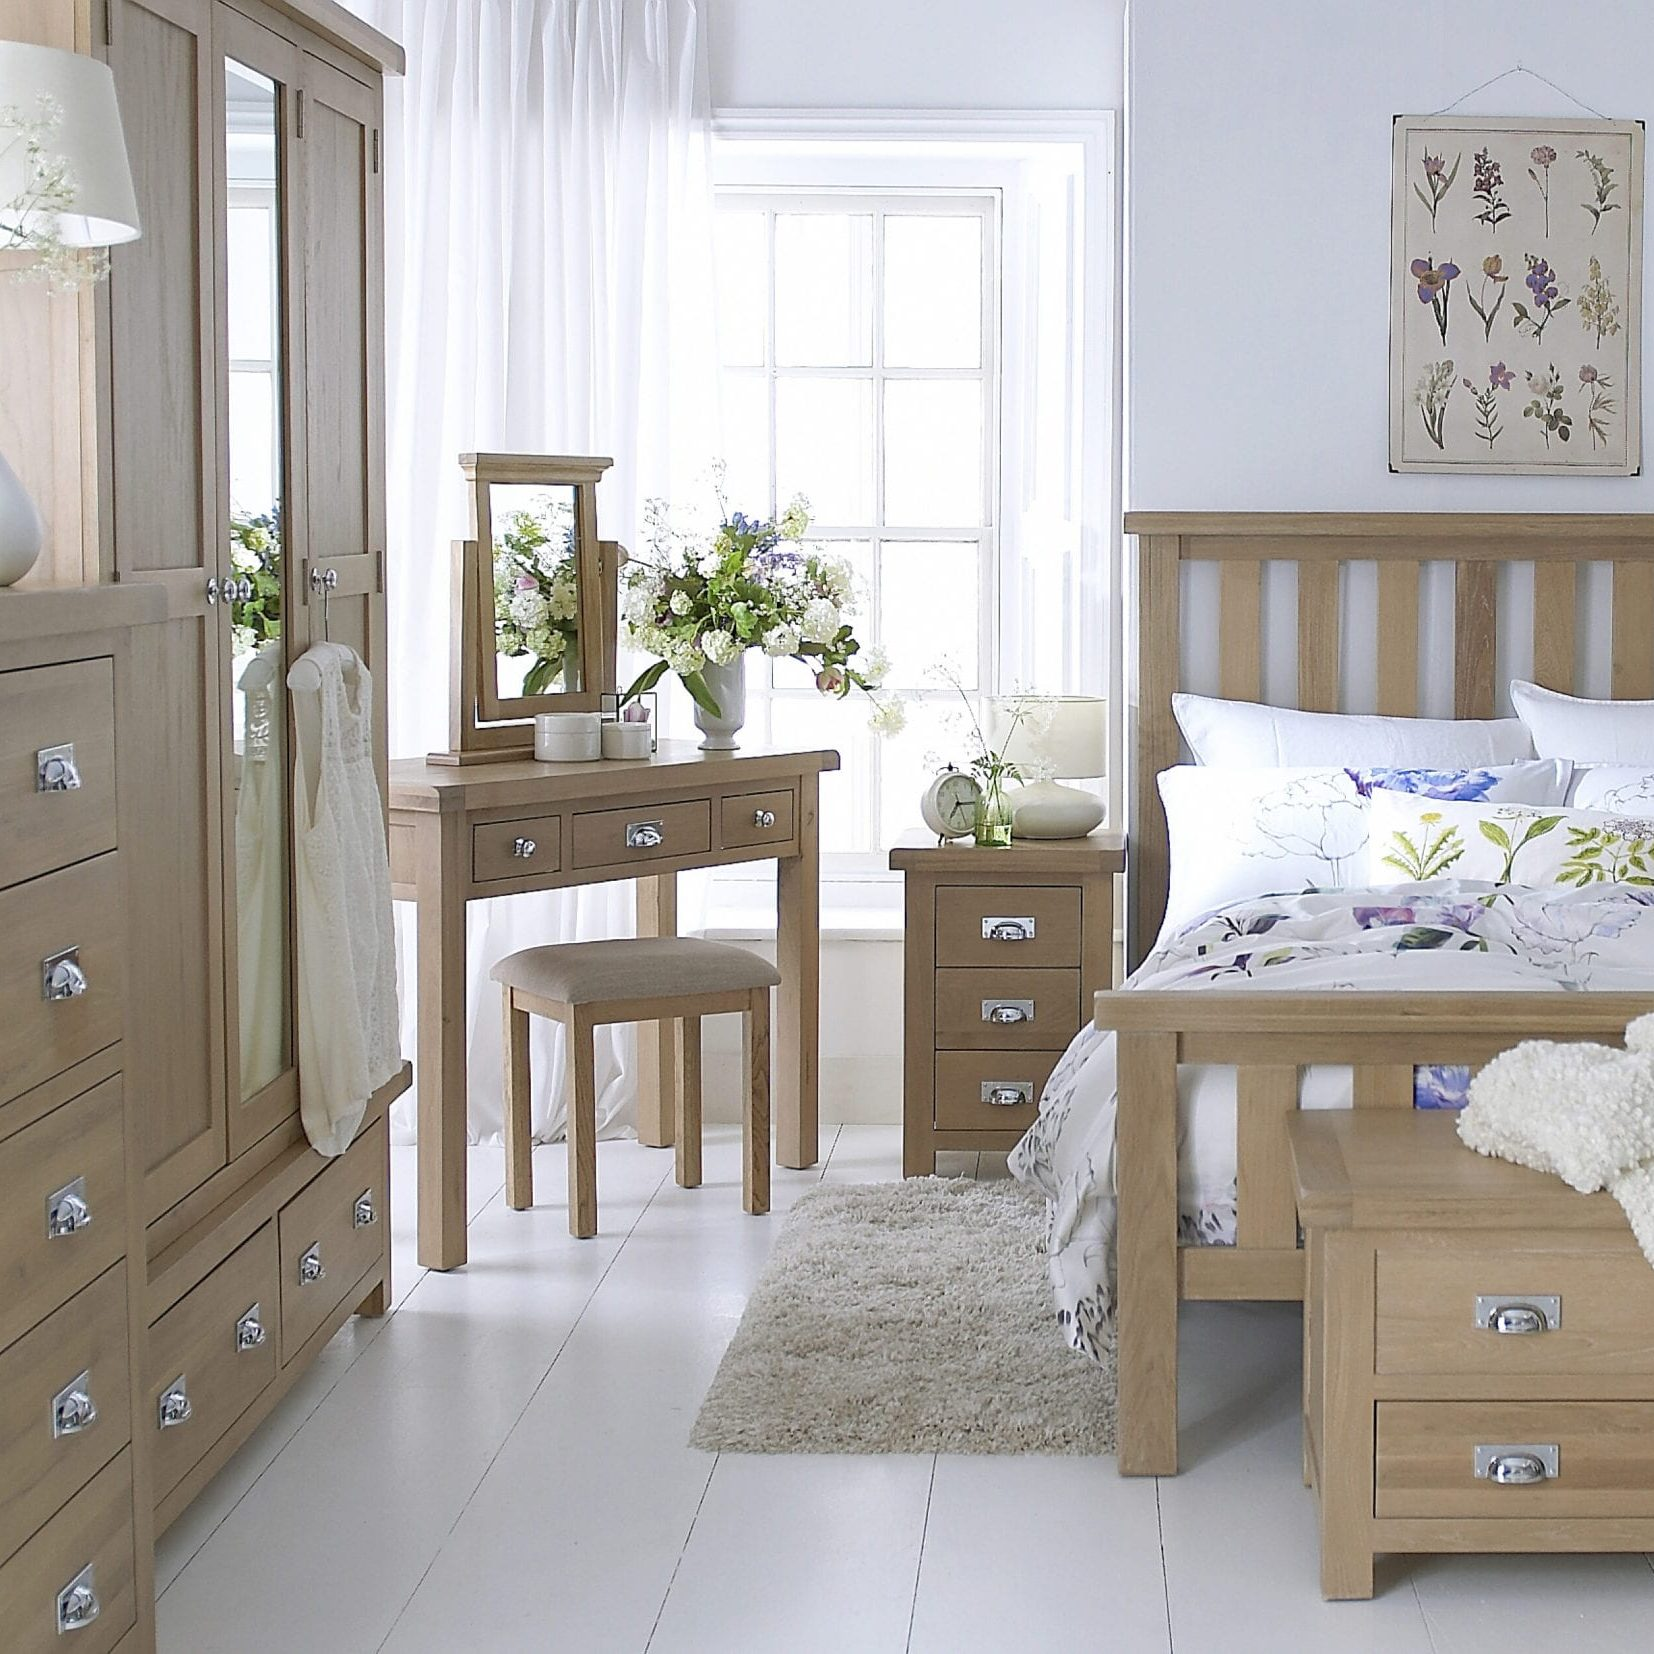 Light Oakham Bedroom Range